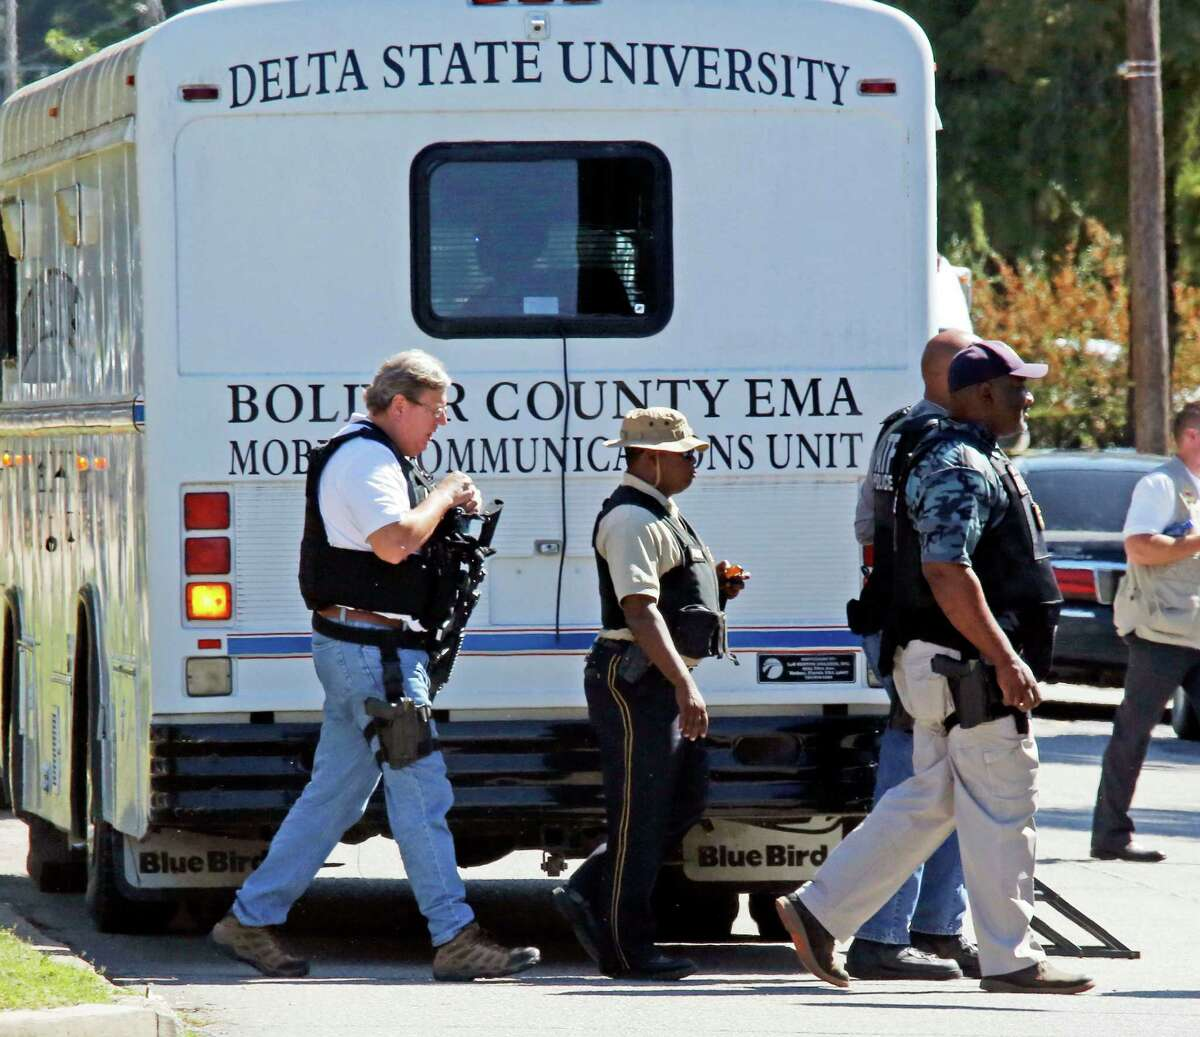 Law enforcement walk across the Delta State University campus to search for an active shooter in connection with a the shooting of history professor Ethan Schmidt in his office at Delta State University in Cleveland, Miss., Monday, Sept. 14, 2015. Law enforcement are looking for a another school employee in connection with the killing. (AP Photo/Rogelio V. Solis)